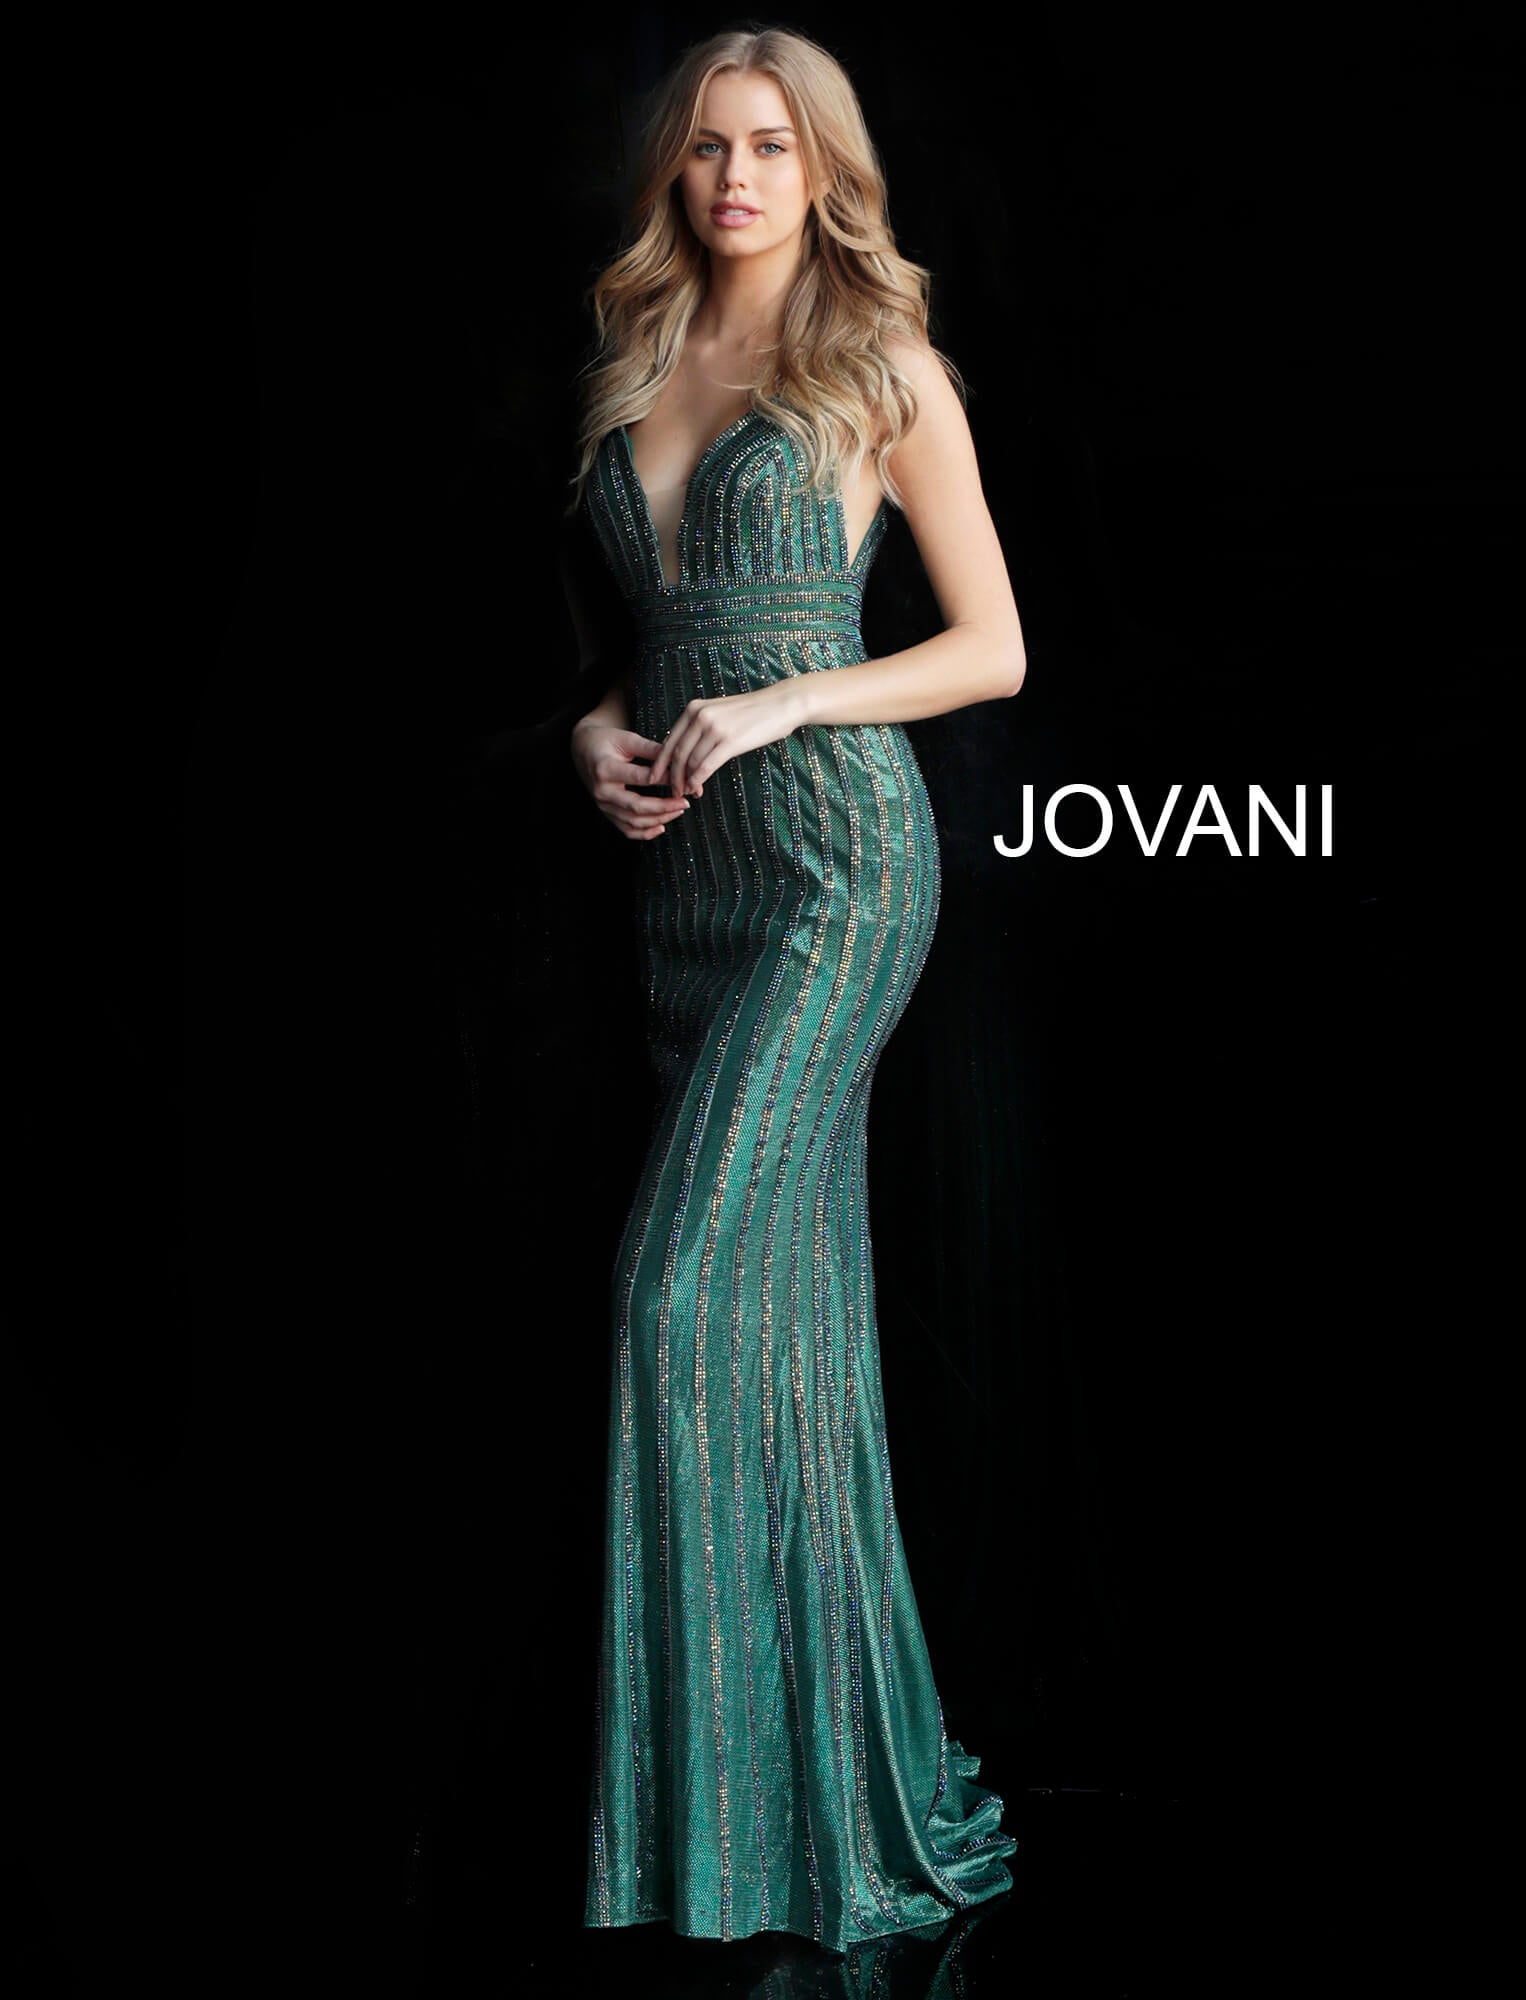 Jovani Beaded Plunging Neckline Dress